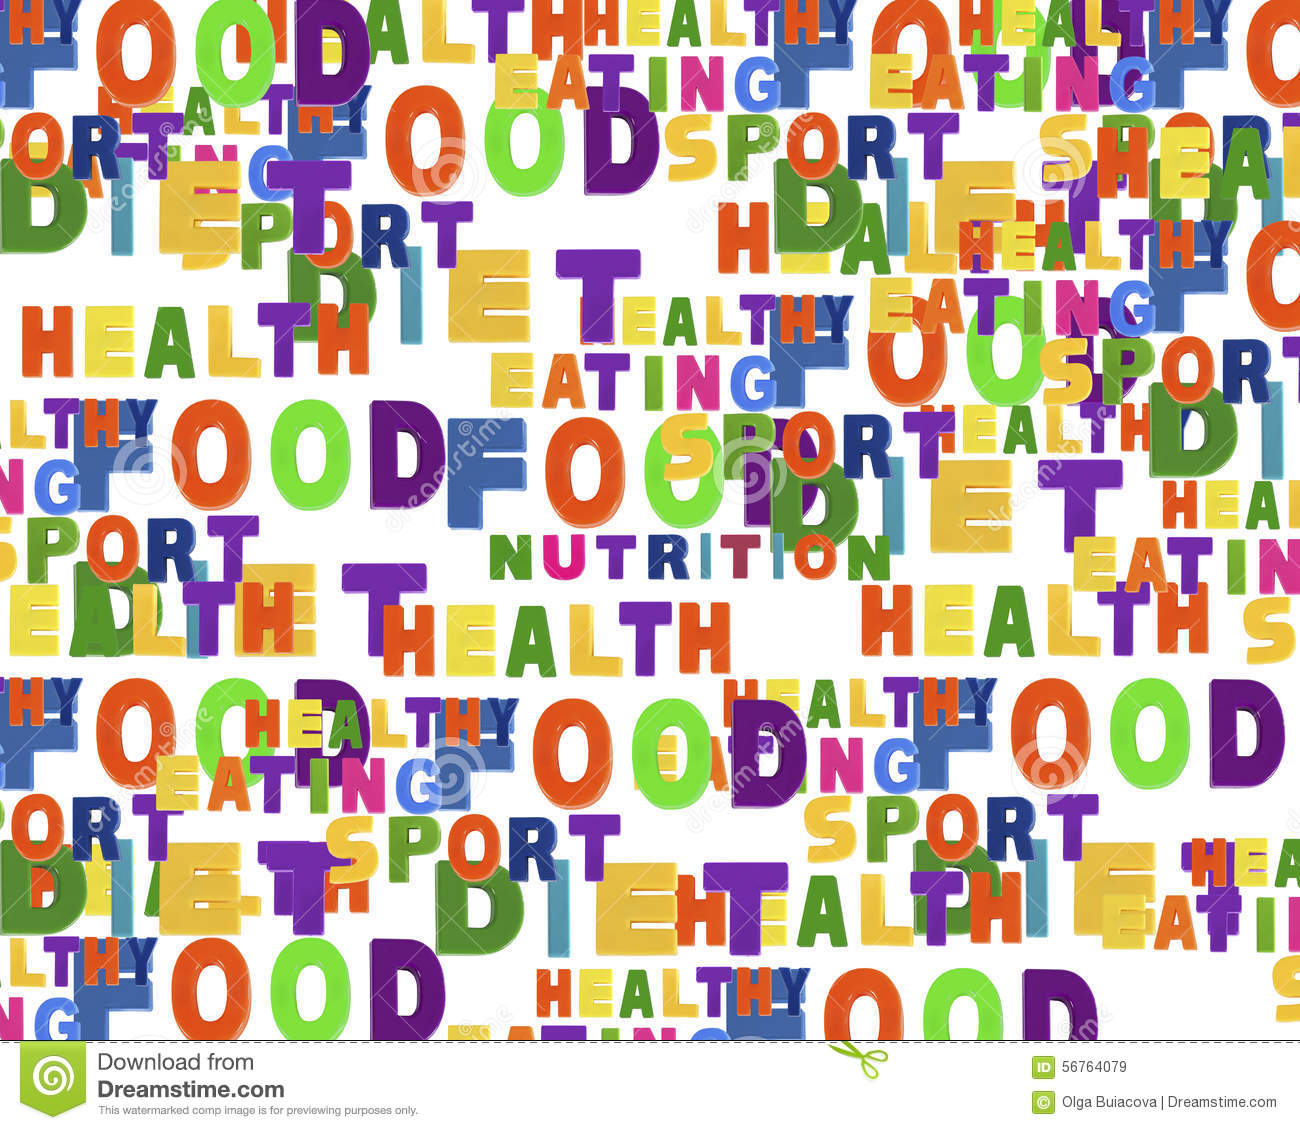 conceptual image of tag cloud containing words related to food